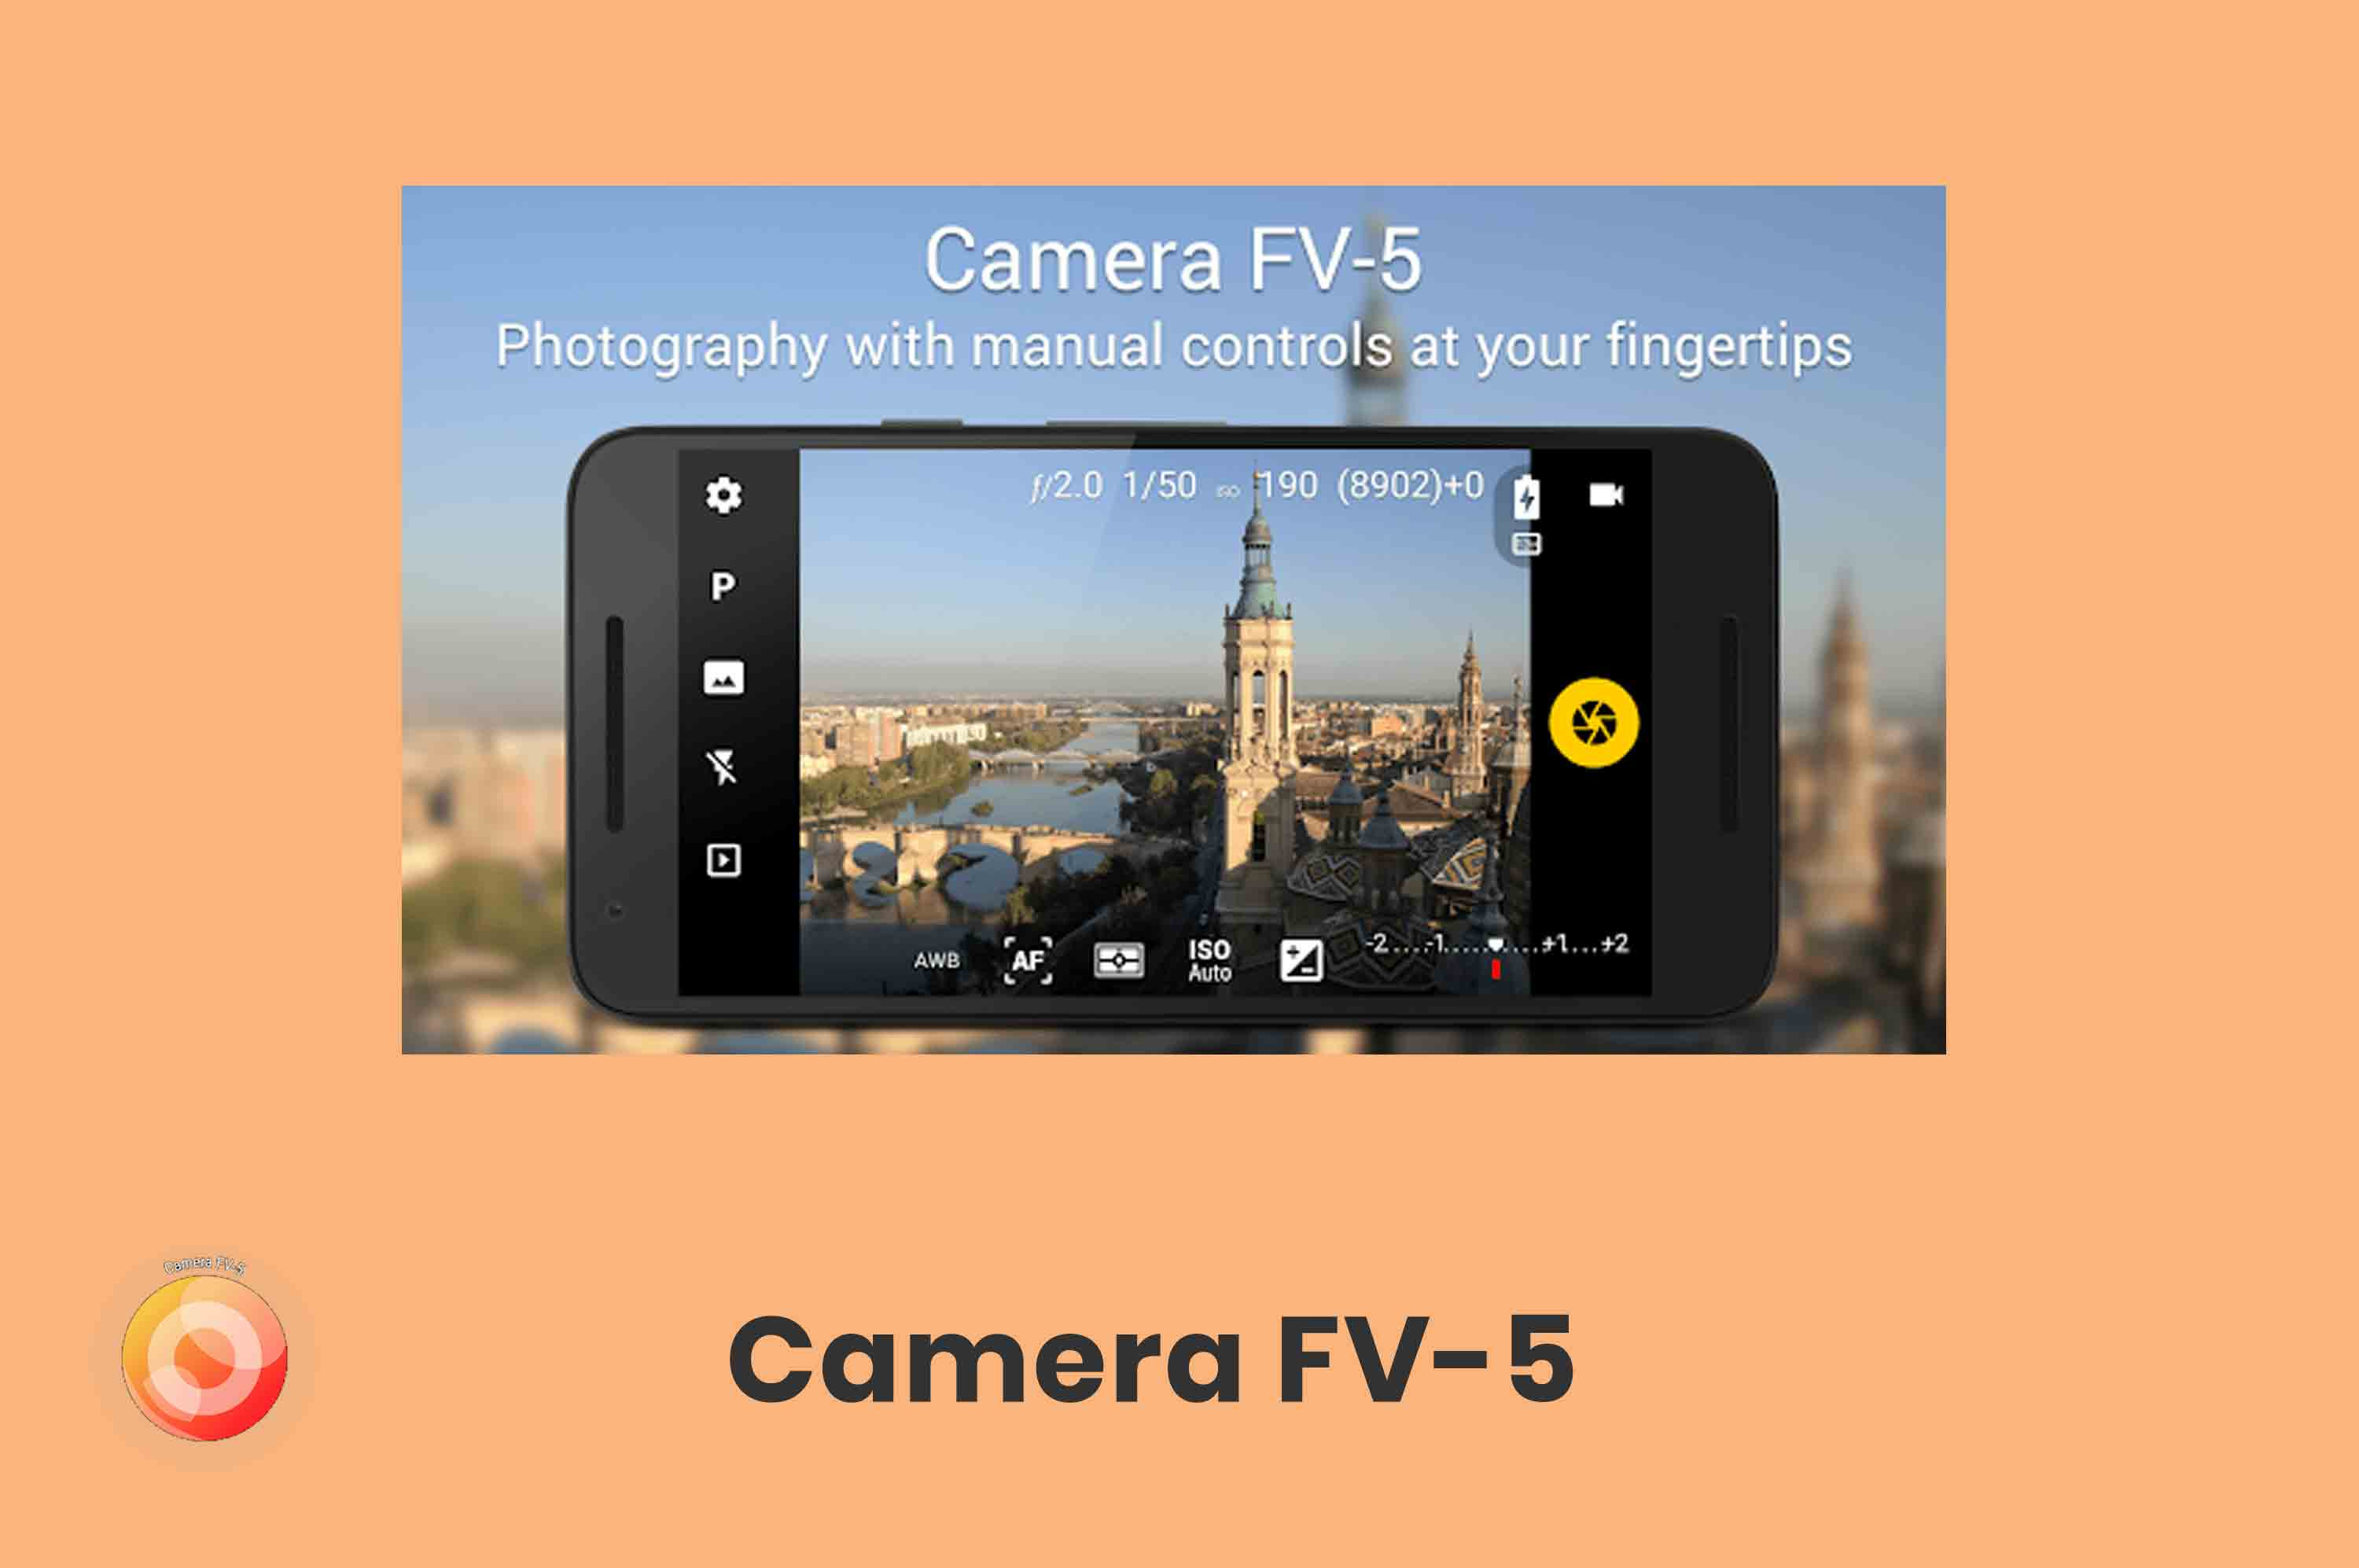 a smartphone with camera fv-5 app capturing image of a building